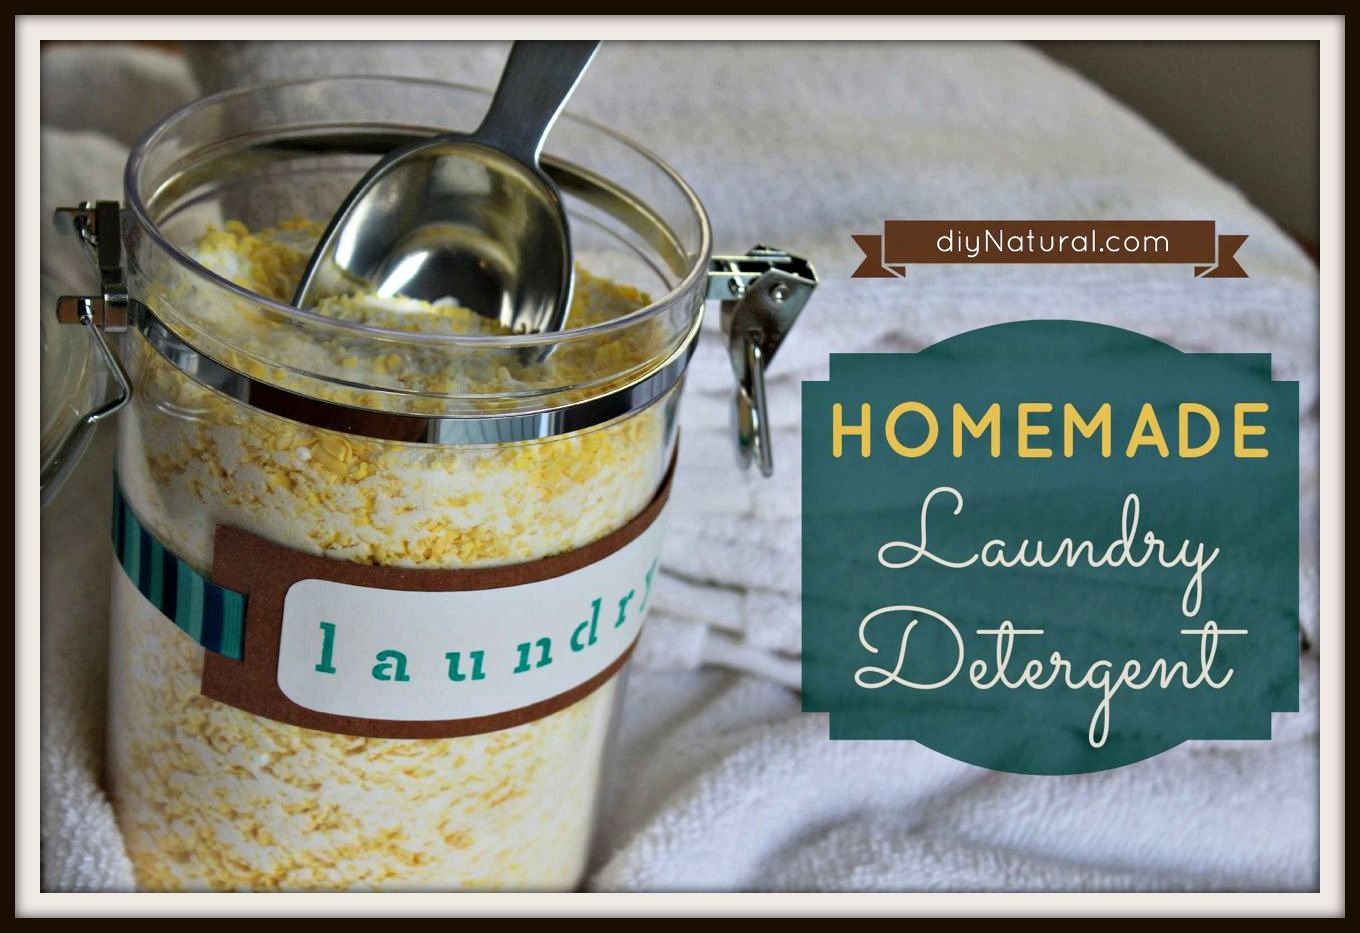 Homemade Laundry Detergent Recipe Homemade Laundry Detergent